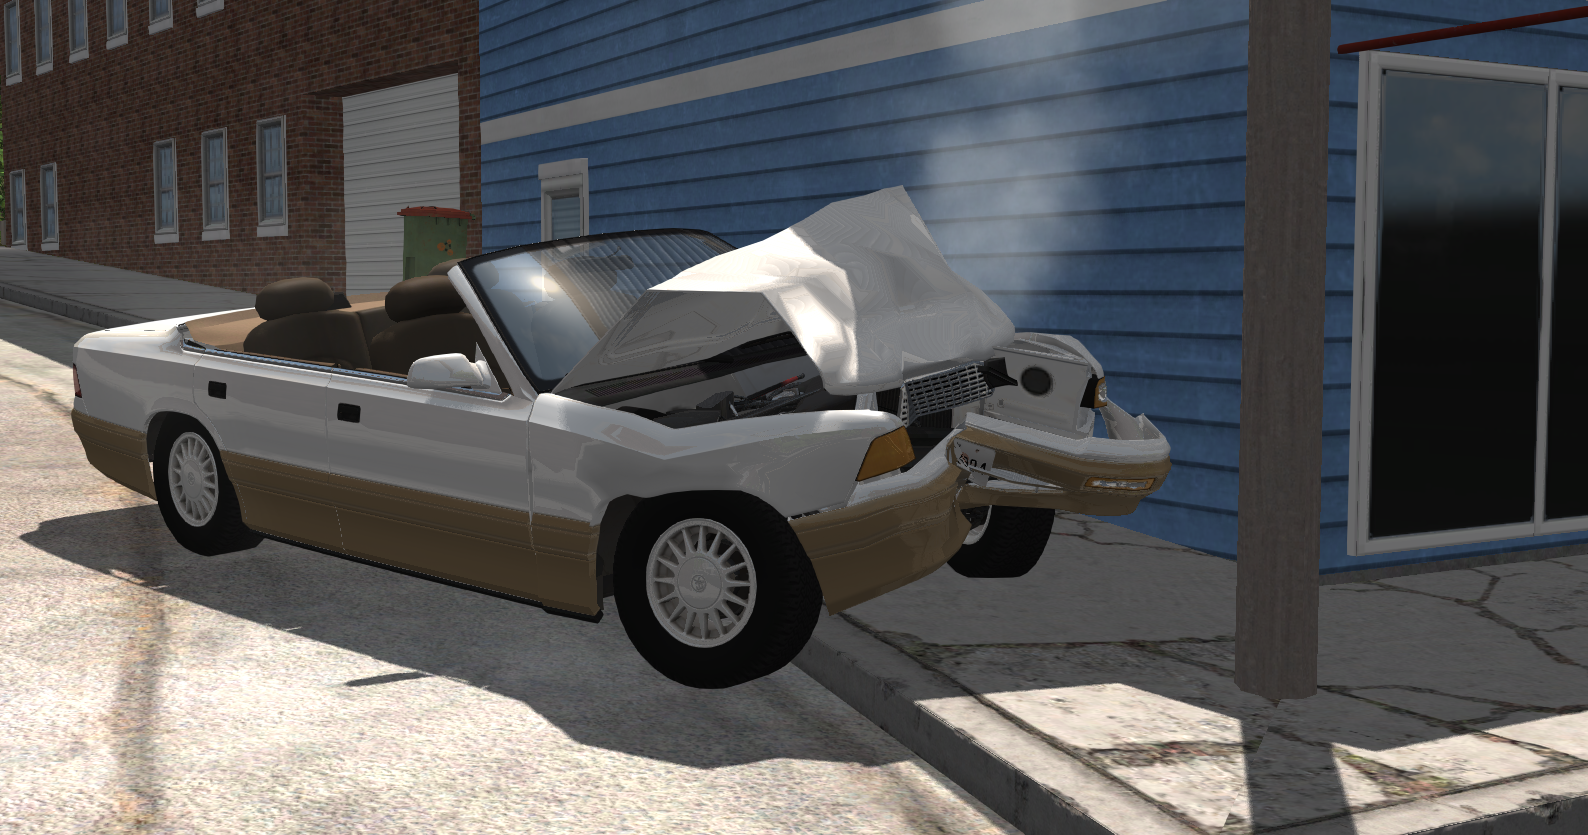 Wip gavril grand marshal cabriolet beamng screenshot00106g screenshot00110g screenshot00111g screenshot00112g sciox Choice Image